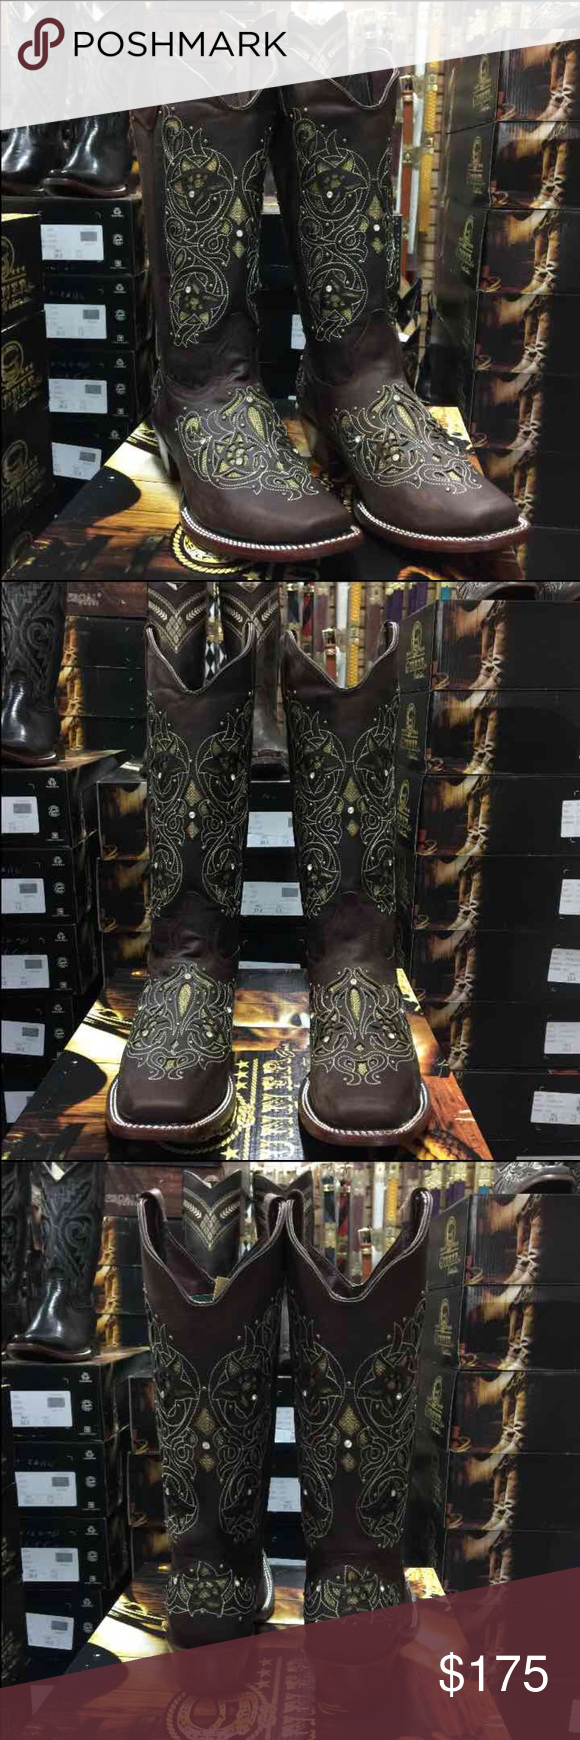 Women's Brown and gold Floral boots Dark brown with gold boots  Brand new in box 100% leather  Women's sizes 6-9.5  I can create a listing for your size needed :) Shoes